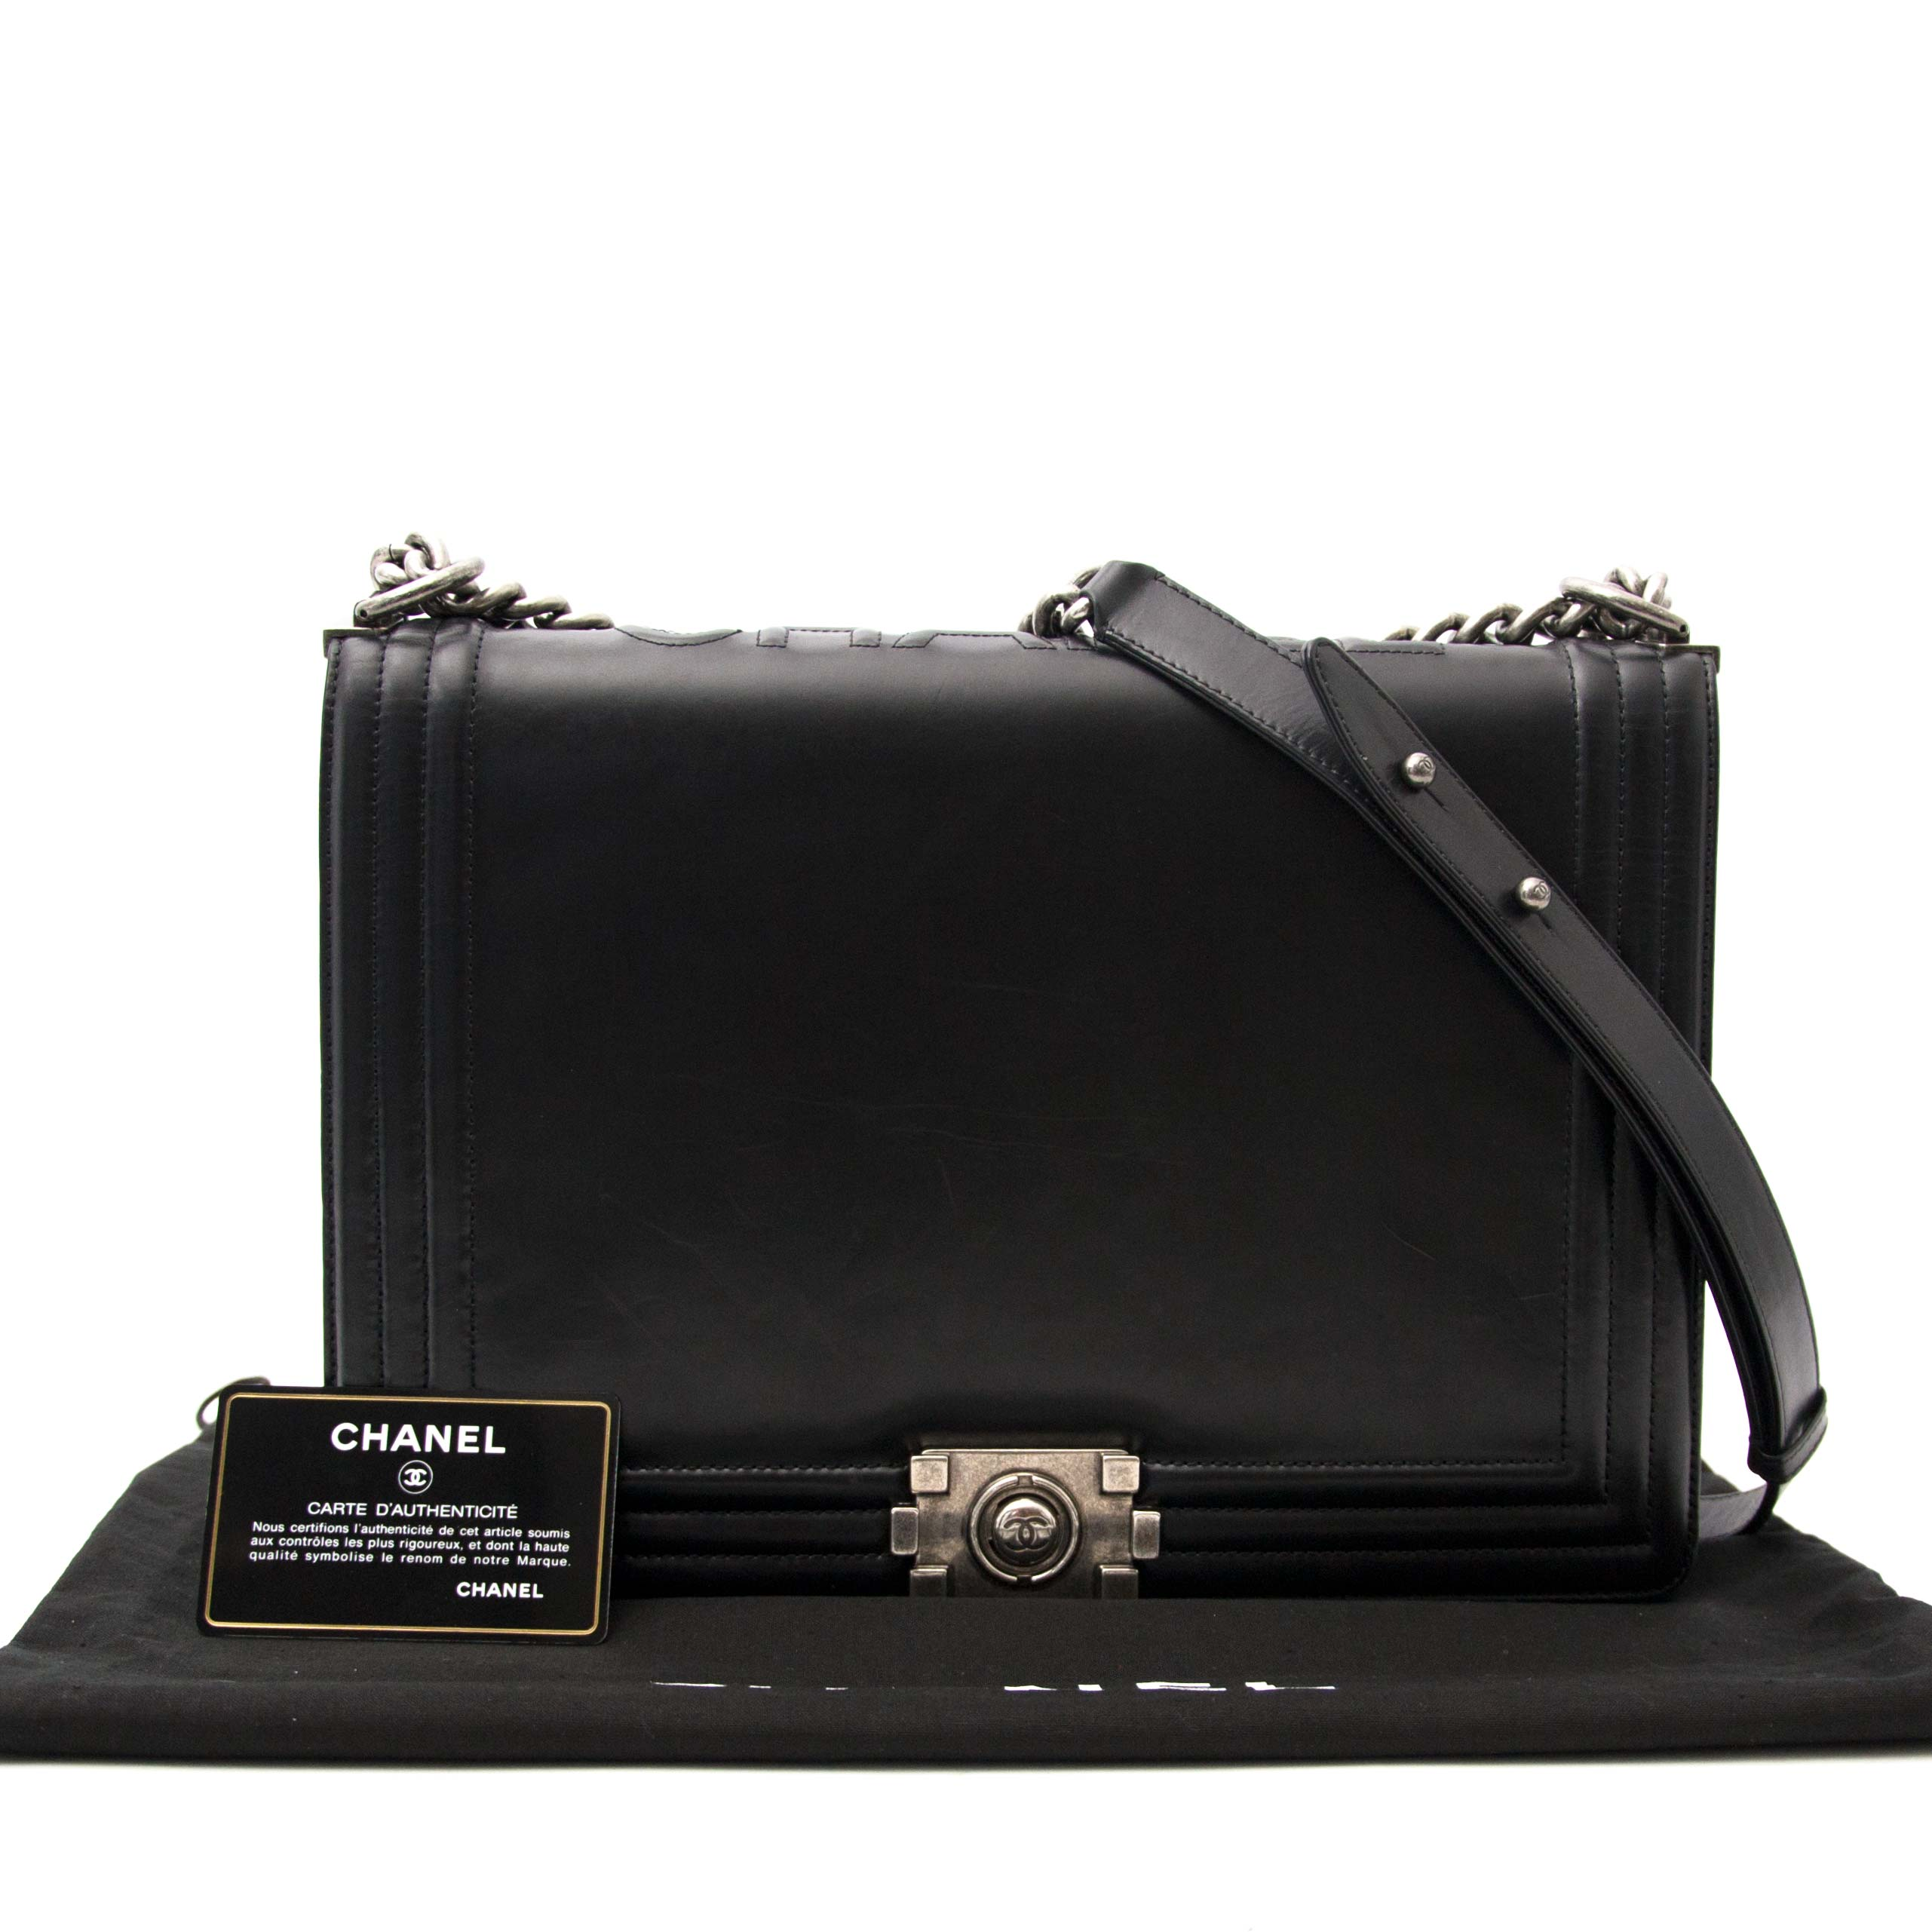 koop online aan de beste prisjChanel Black Large Le Boy Flap Bag